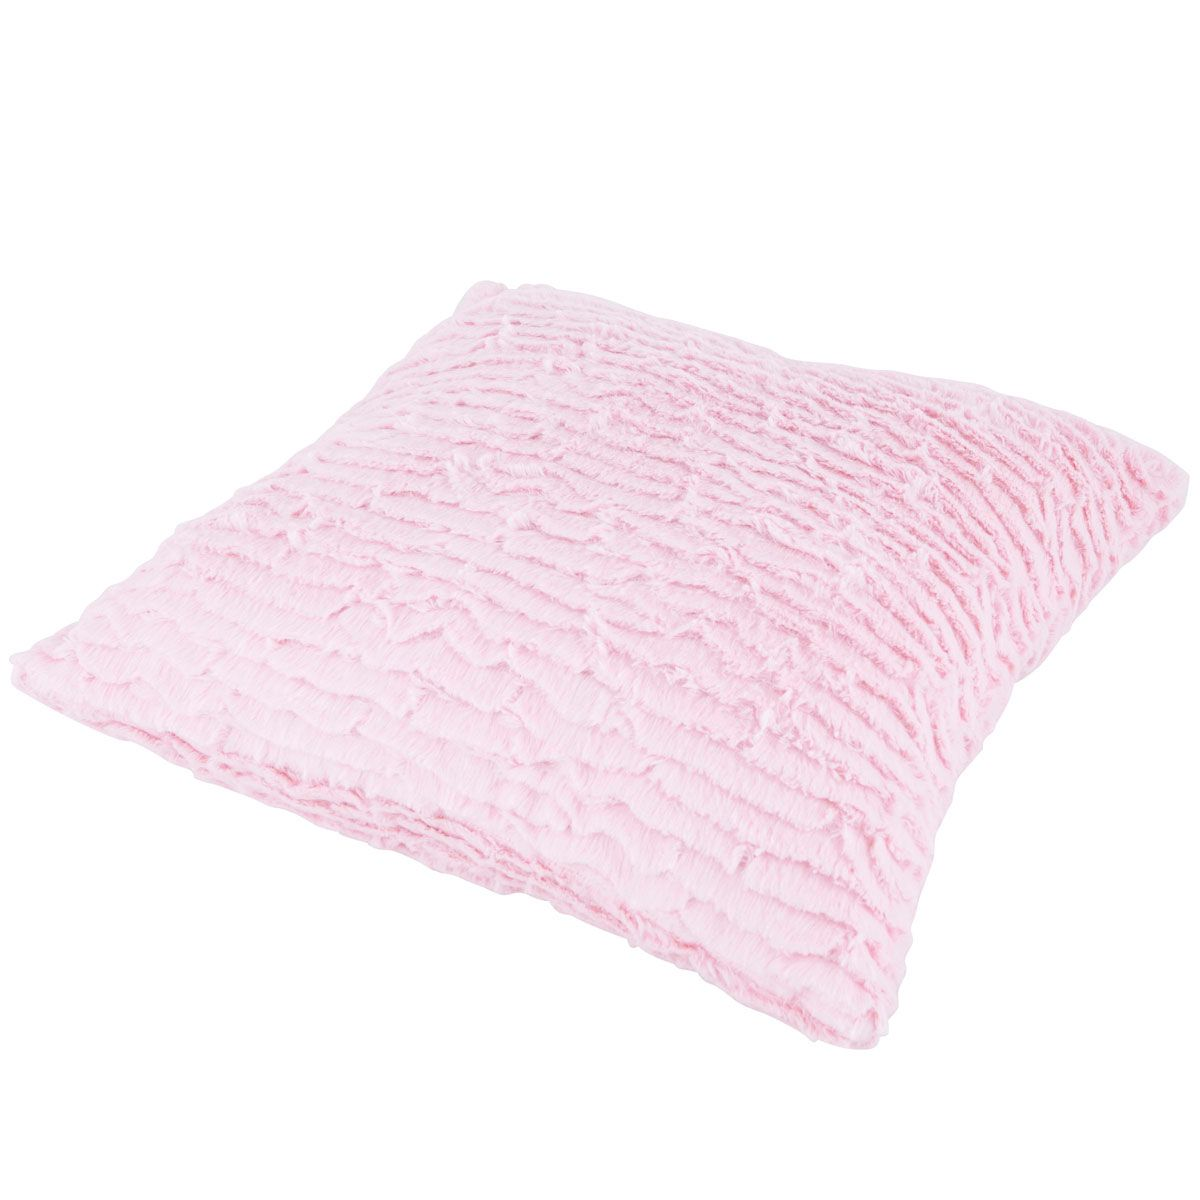 Coussin Karnal dragee 47x47cm